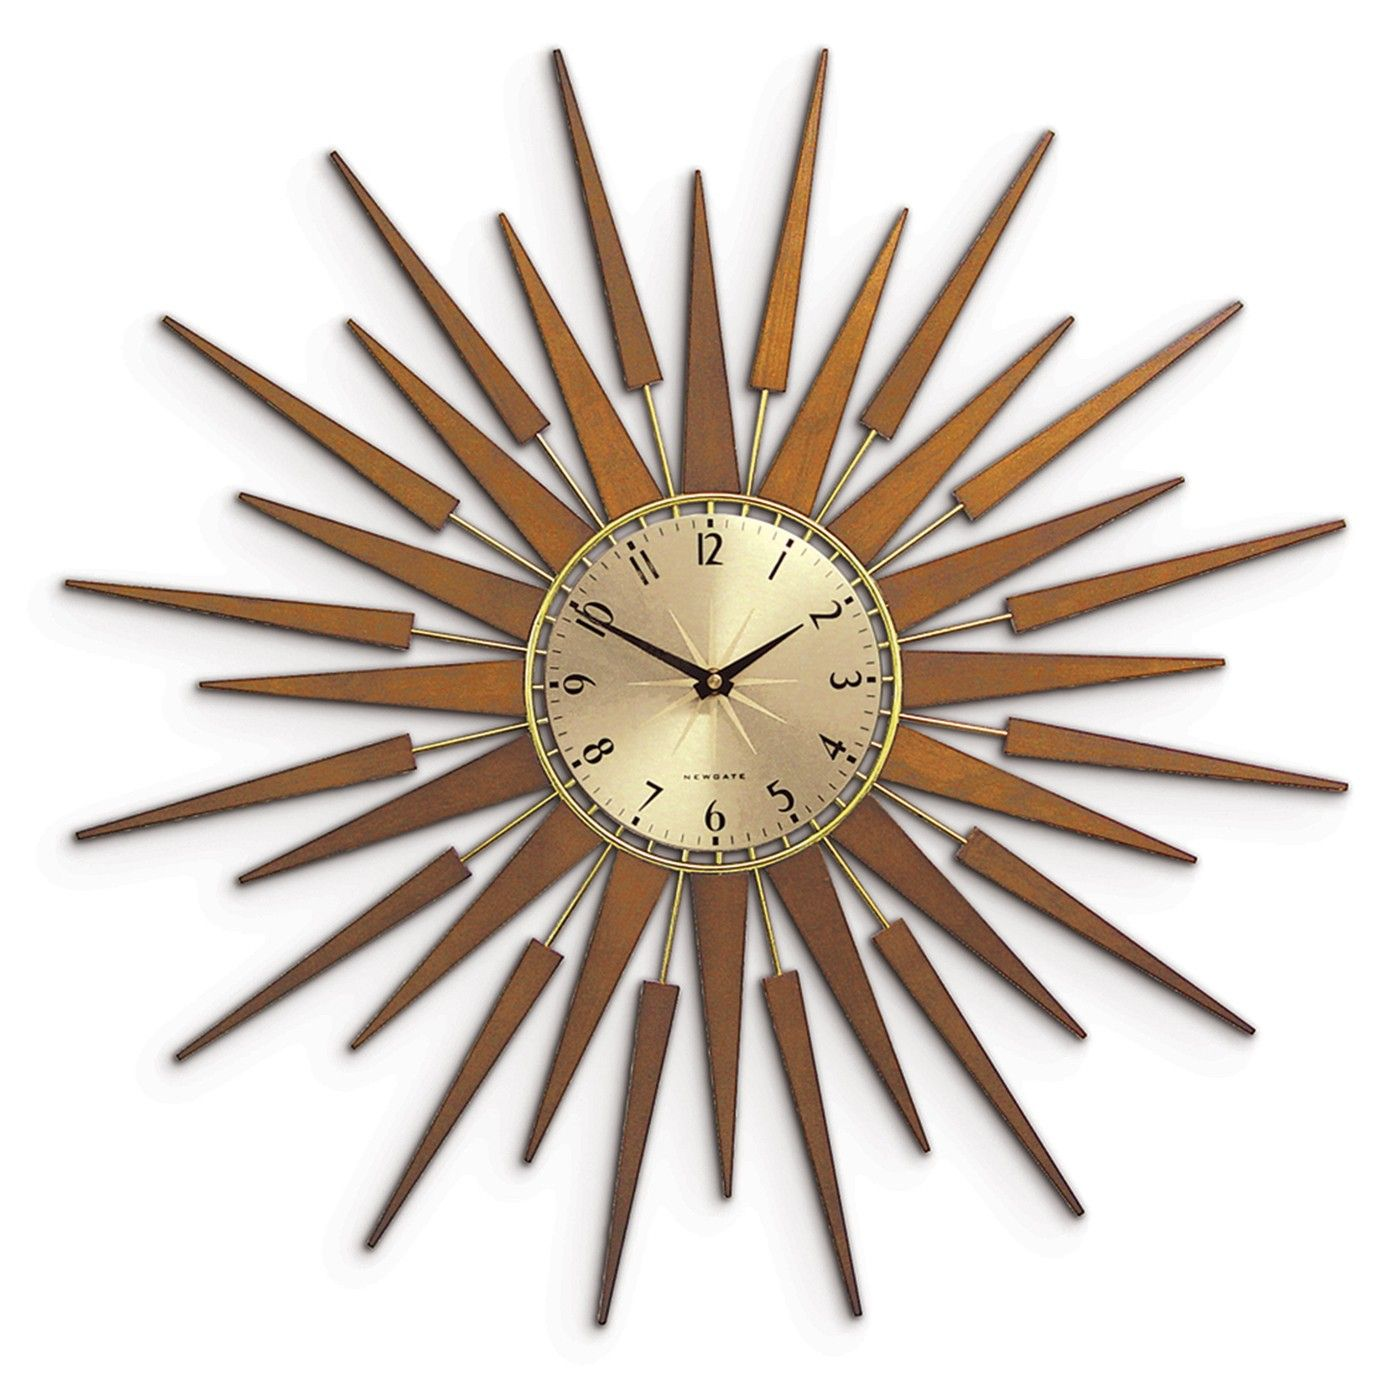 Newgate pluto starburst gold wall clock ideas for the house newgate pluto starburst gold wall clock amipublicfo Images